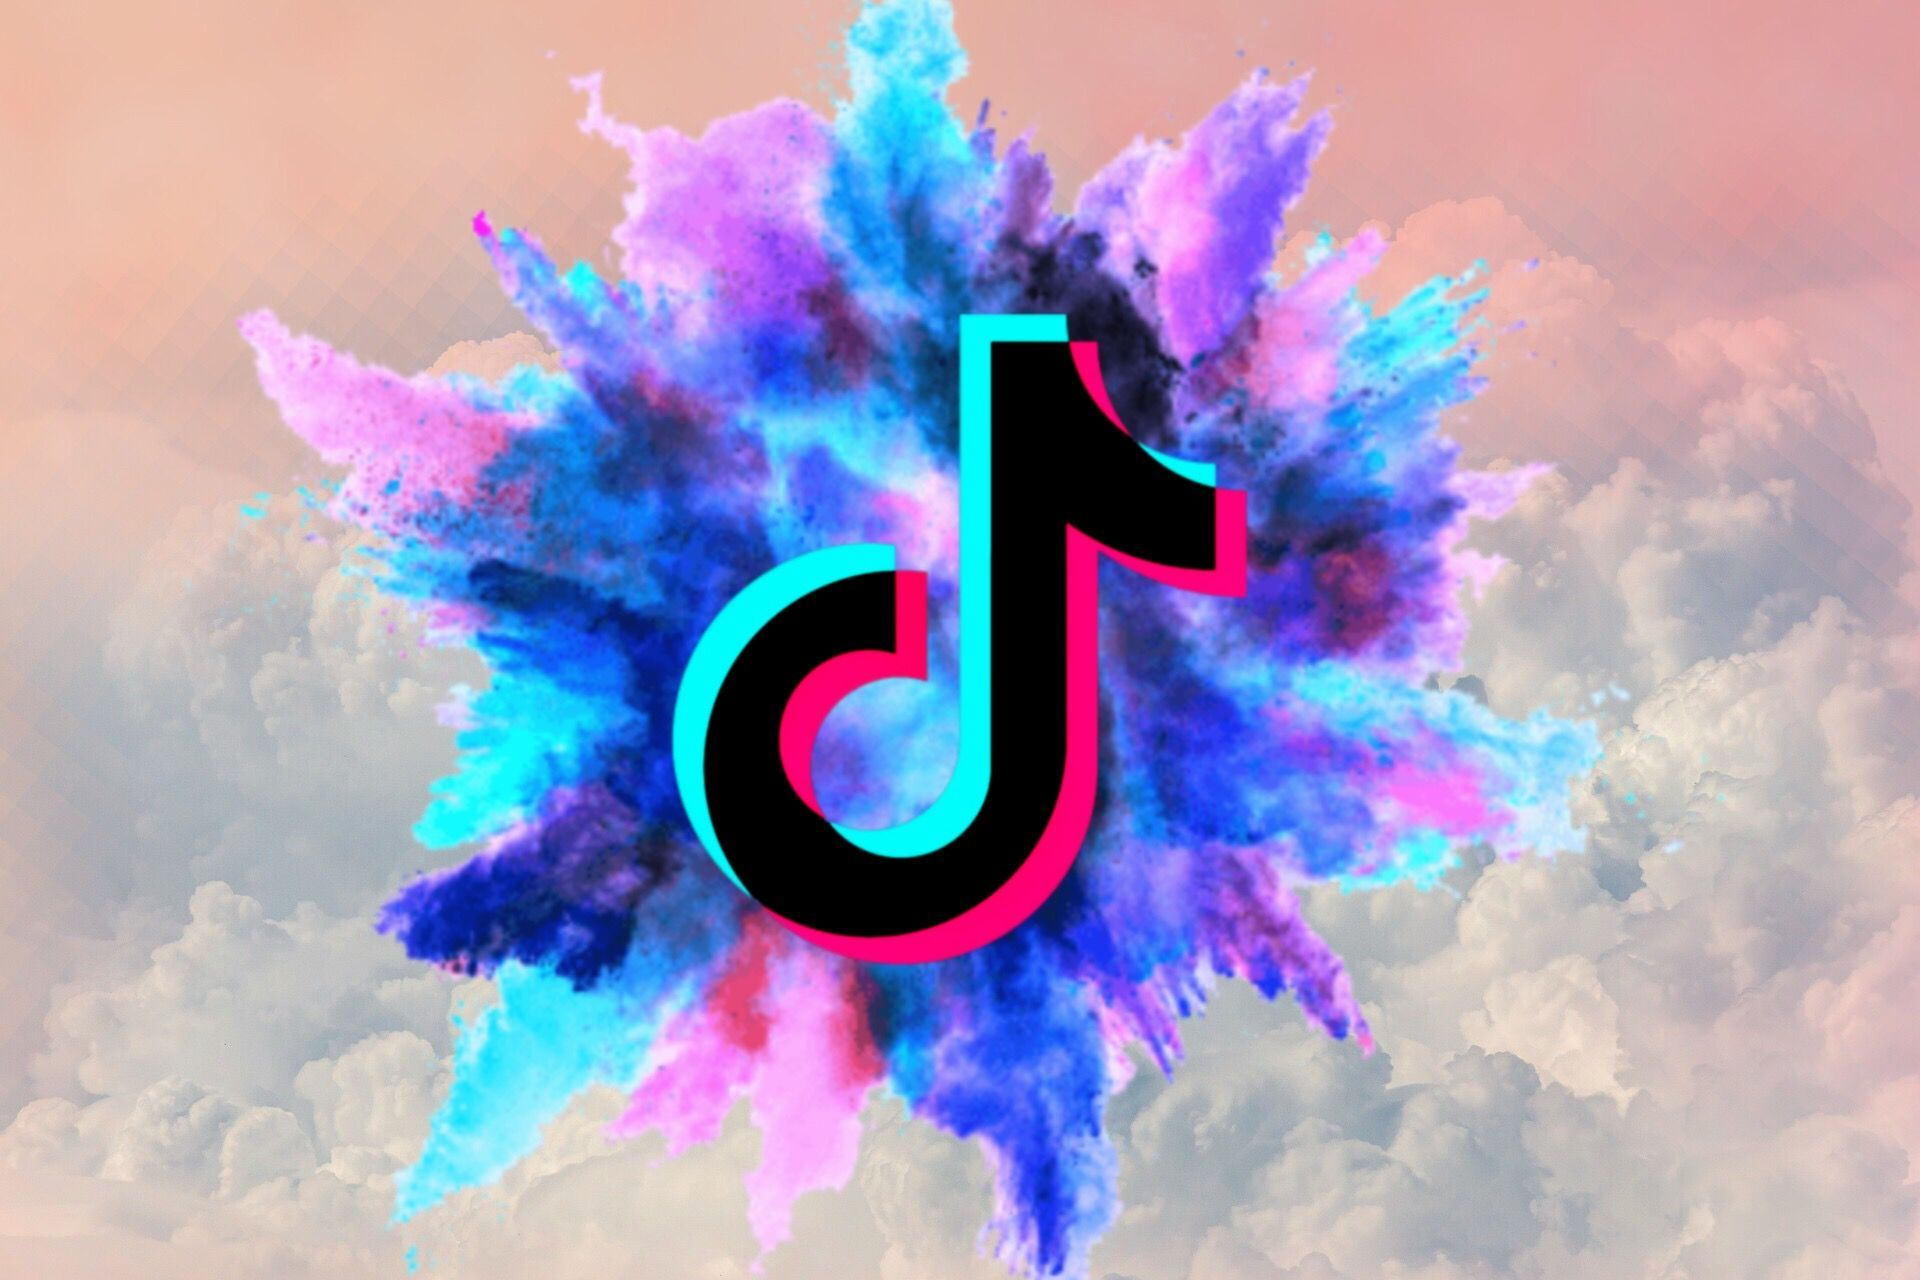 tiktok logo in 2020 Cute emoji wallpaper, Iphone